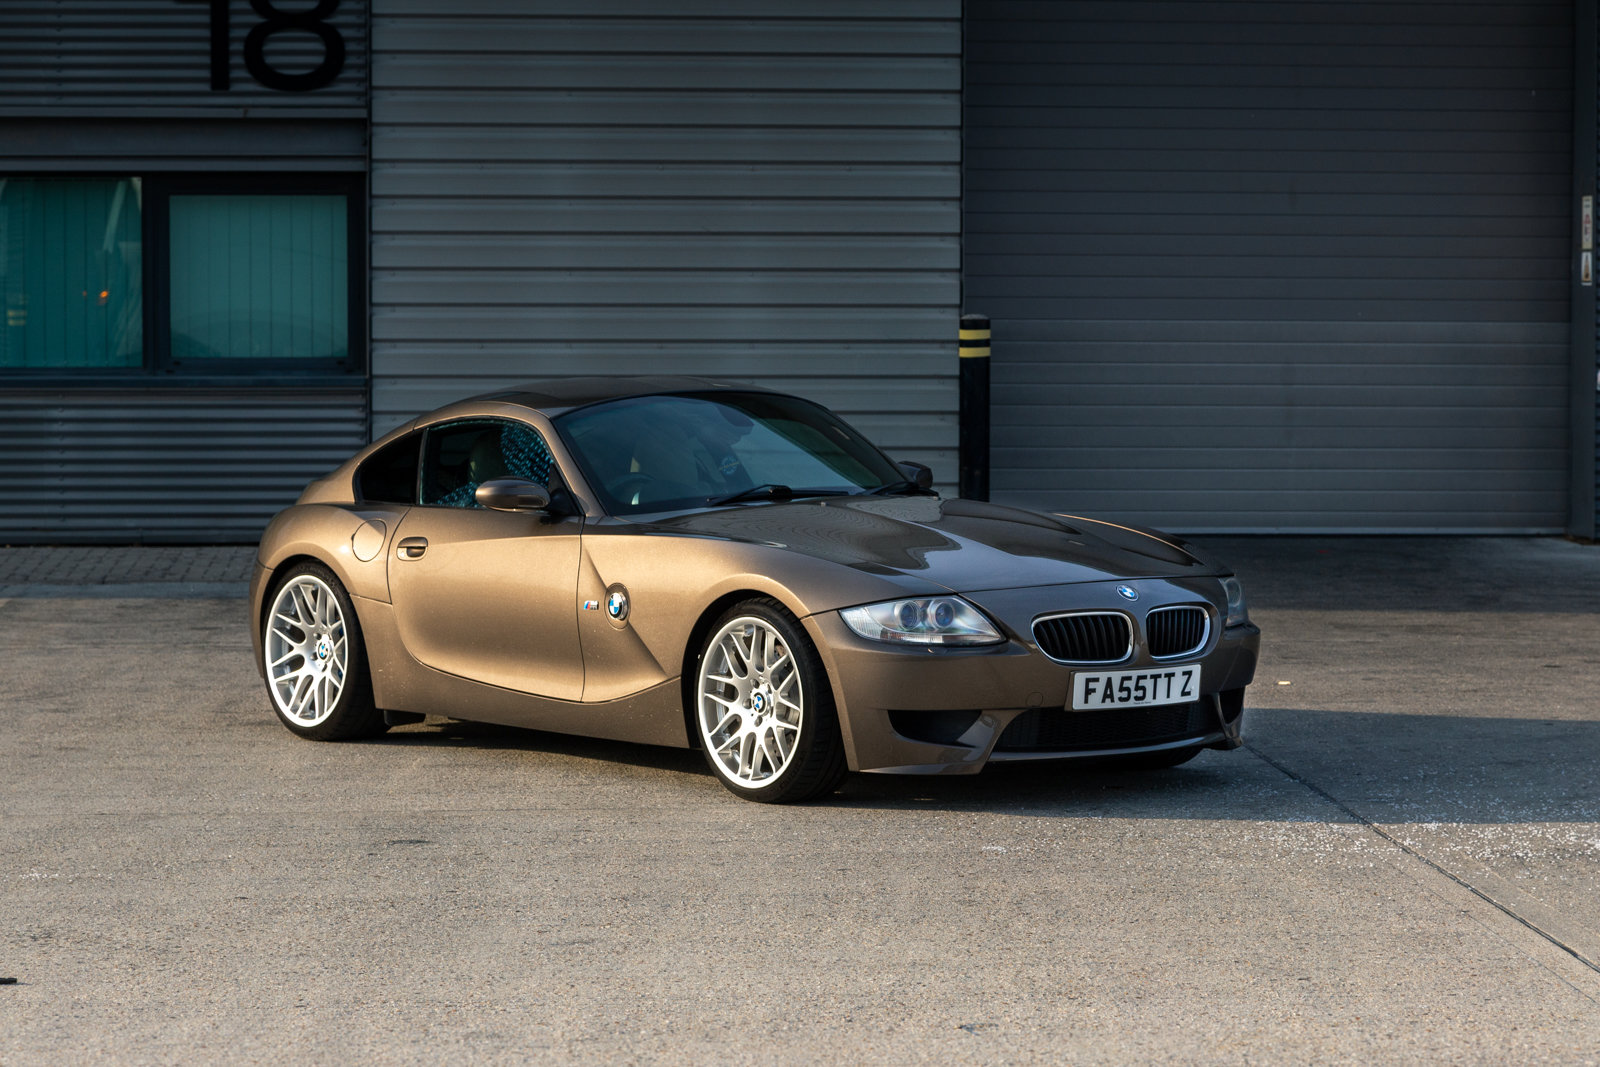 2006 Rare Sepang Bronze BMW Z4M Coupe 1 of 10 For Sale (picture 1 of 6)